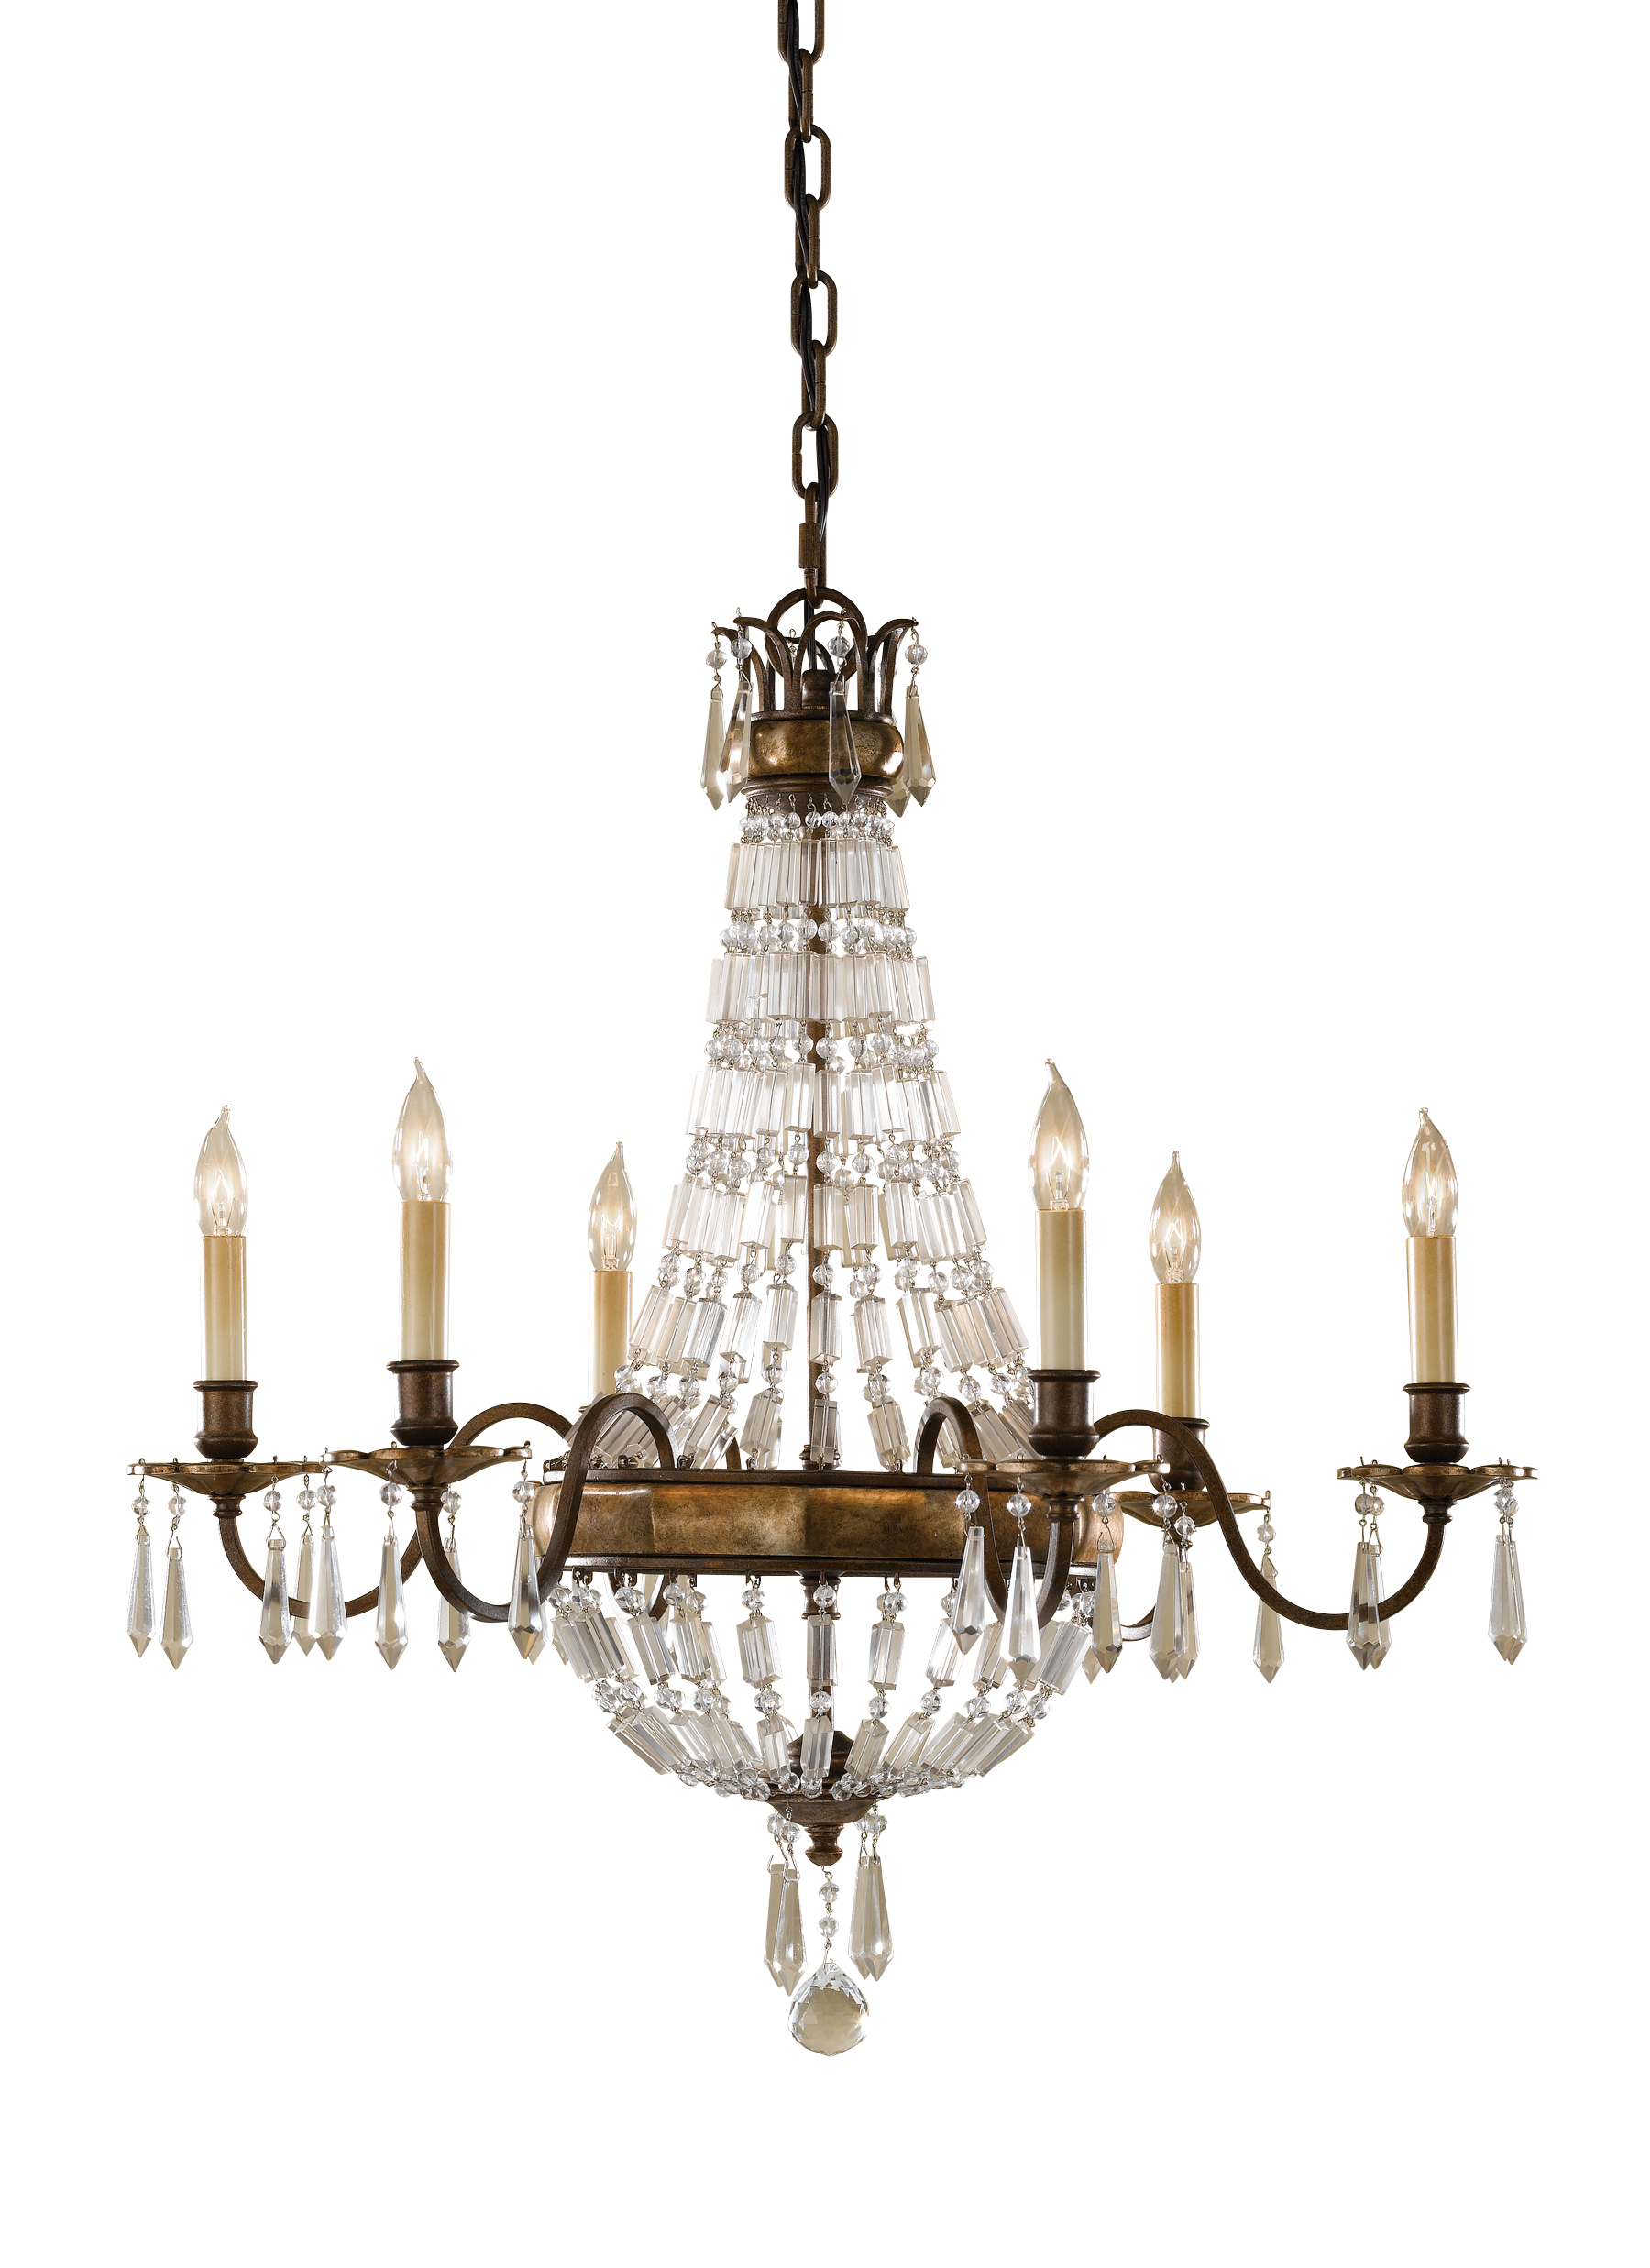 in chandeliers shown murray item feiss iron chandelier light wide af image wood weather lighting forged finish magnifying cfm oak antique inch glass allier